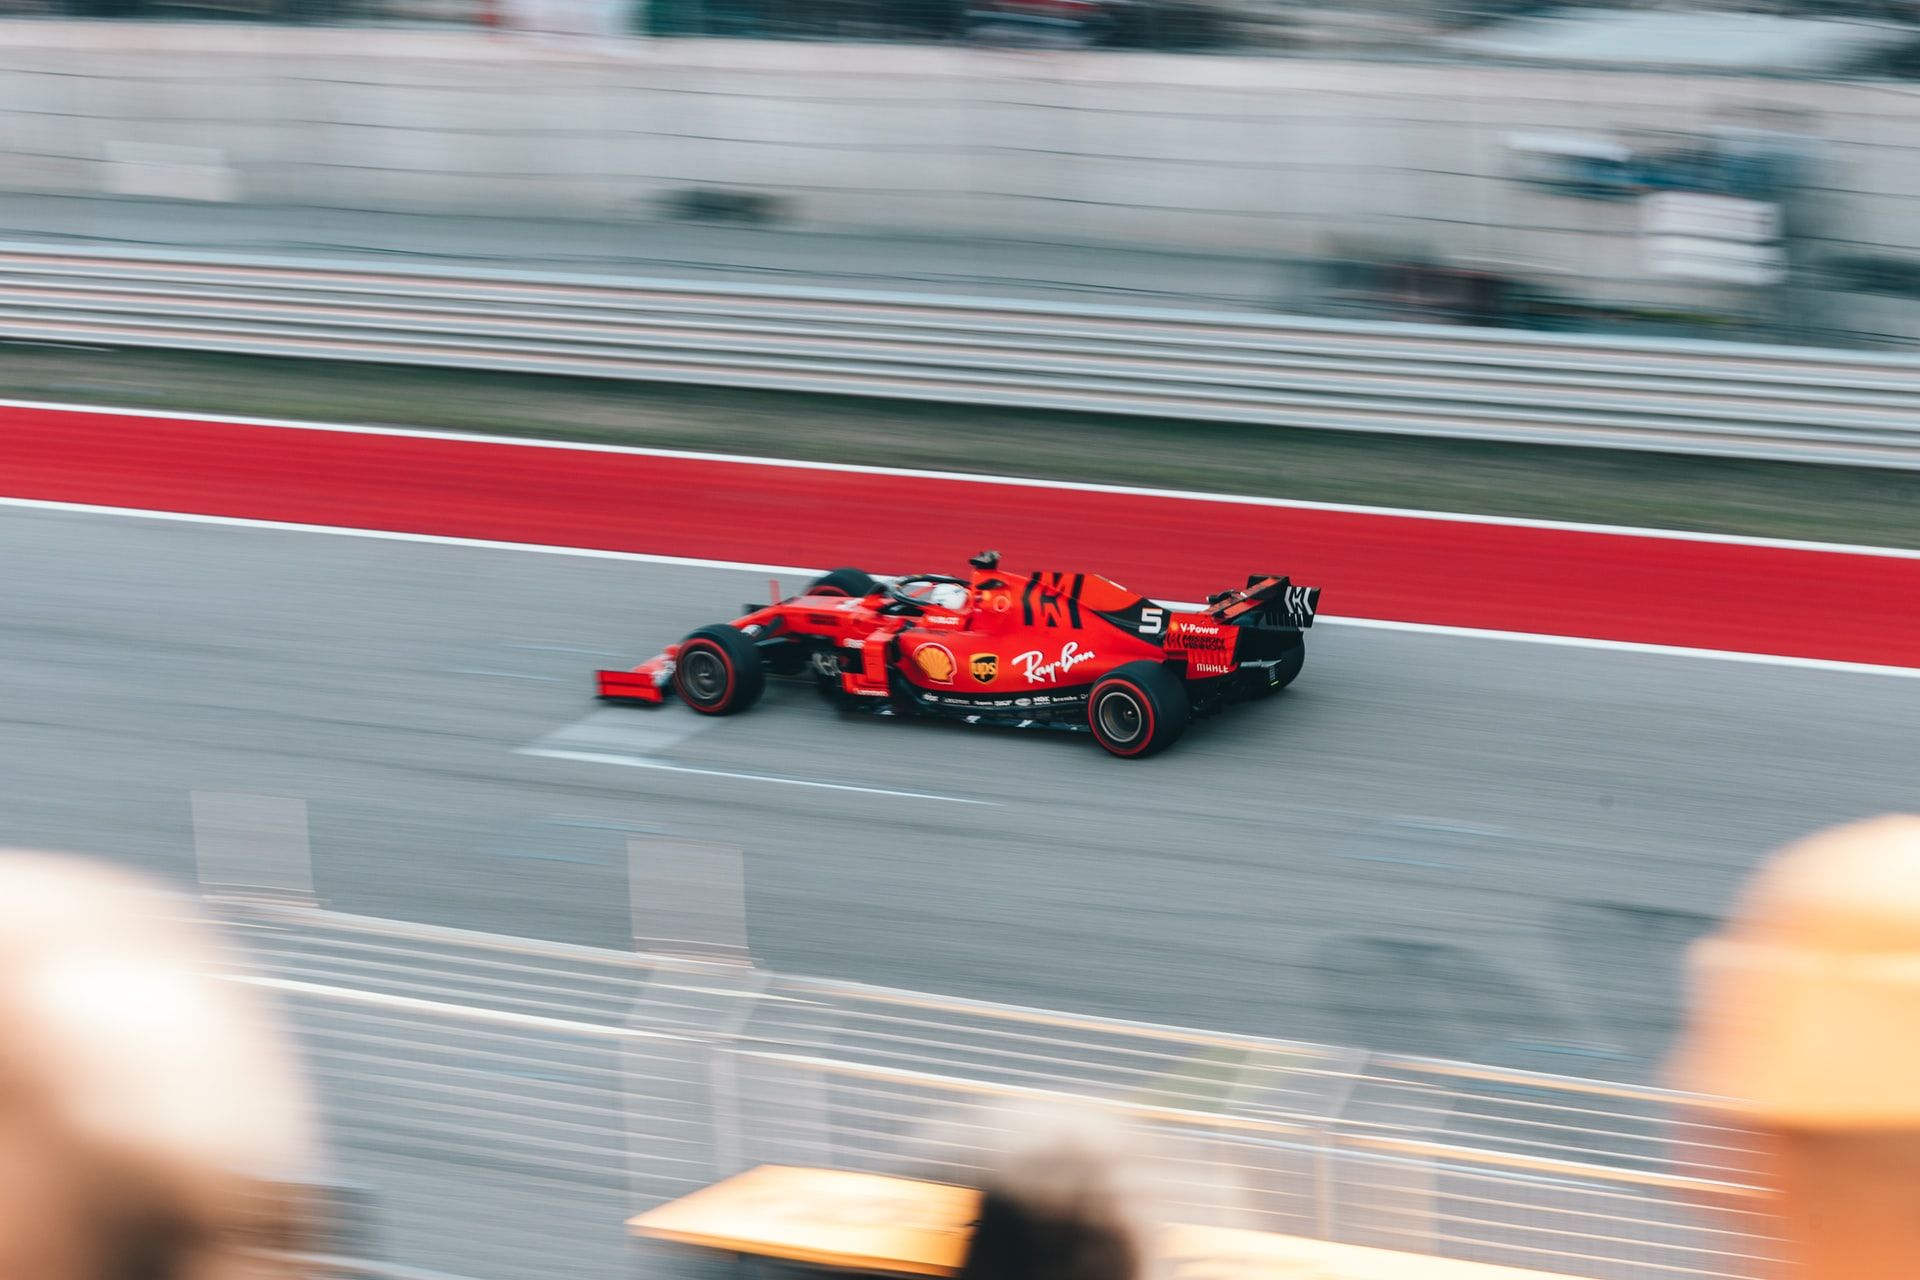 Is Formula 1 an Extreme Sport?